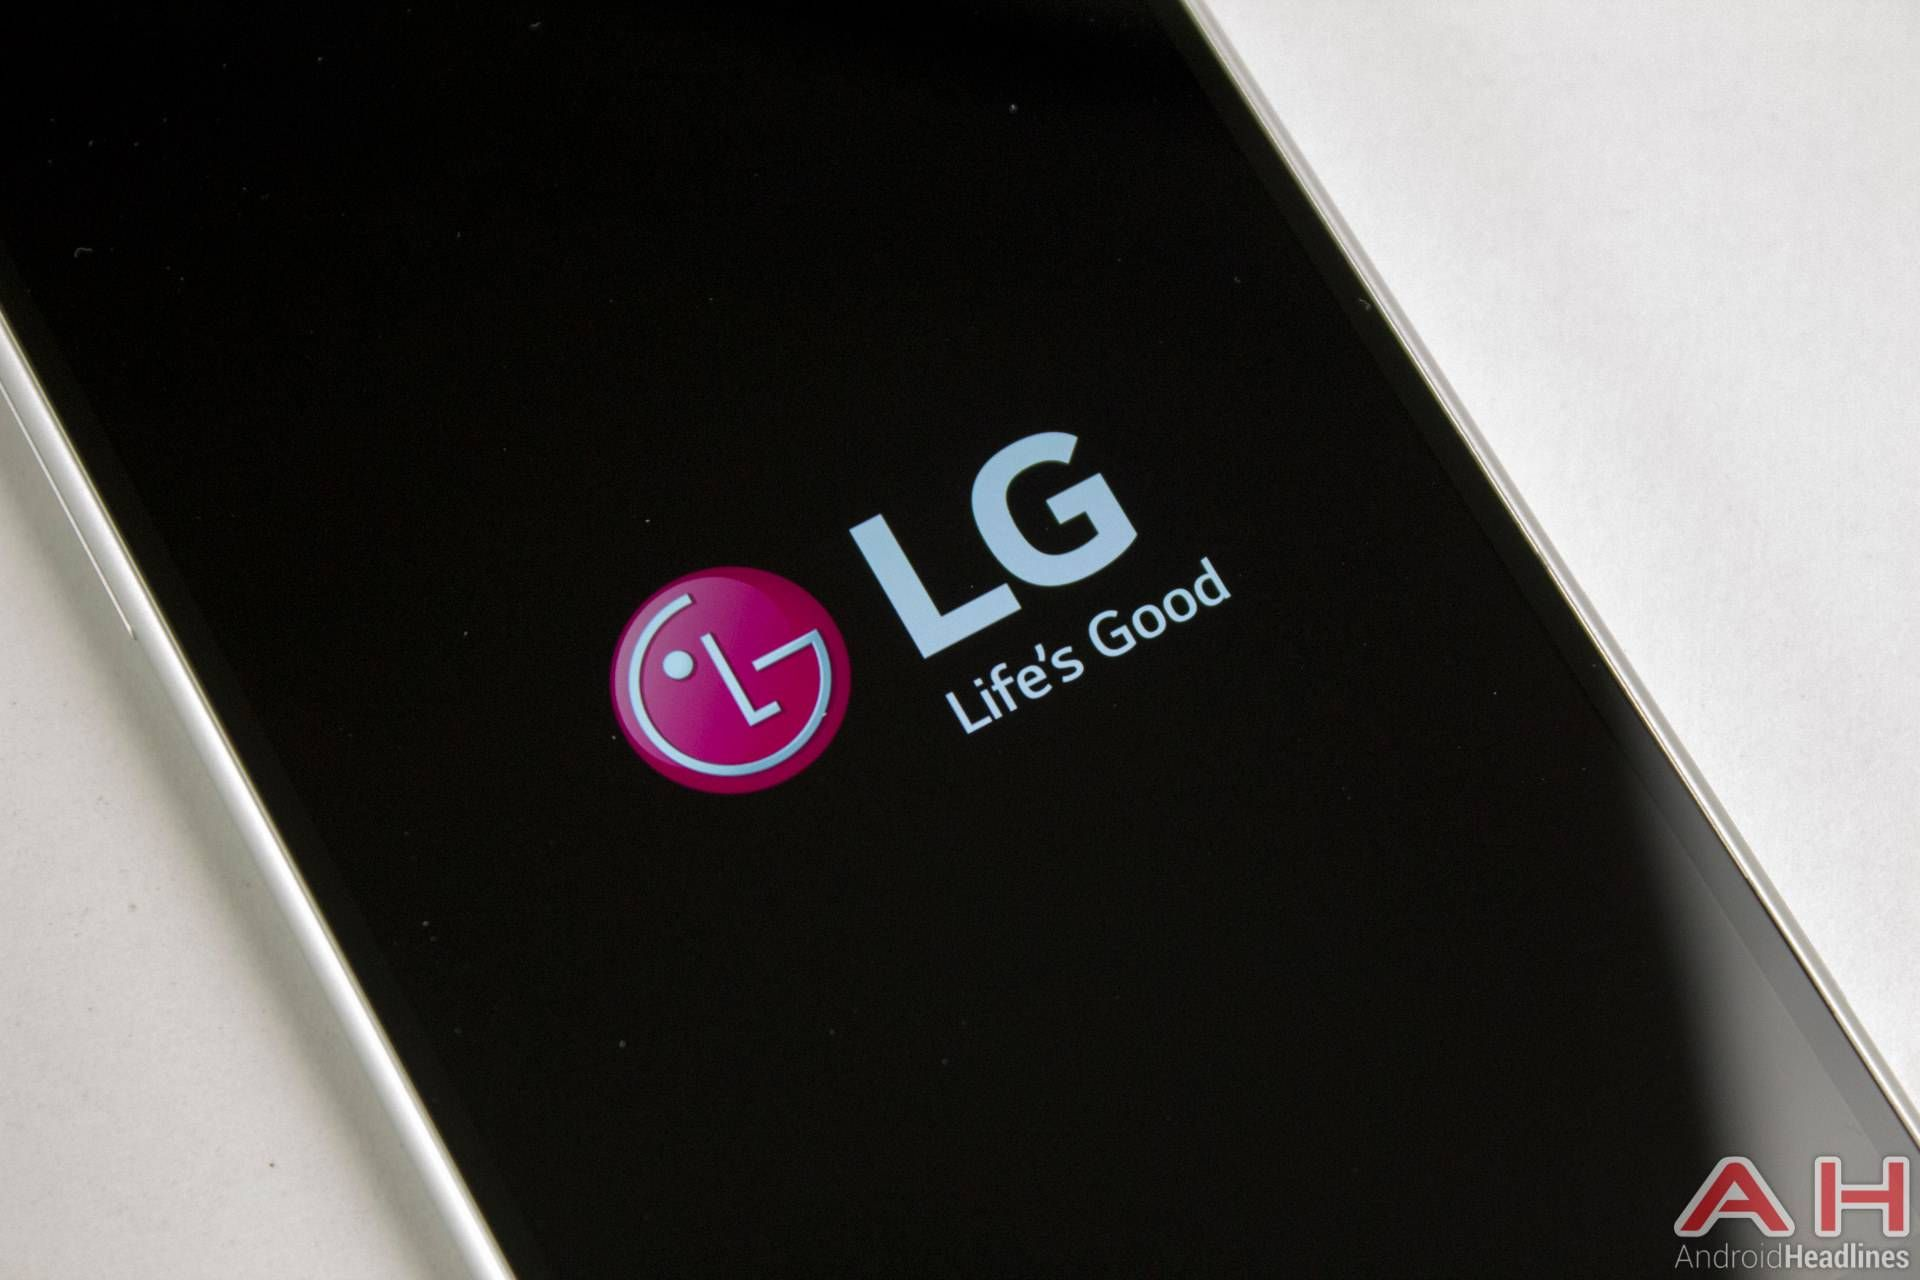 LG Announces High-Resolution 5 7-Inch Super-Wide LCD Display